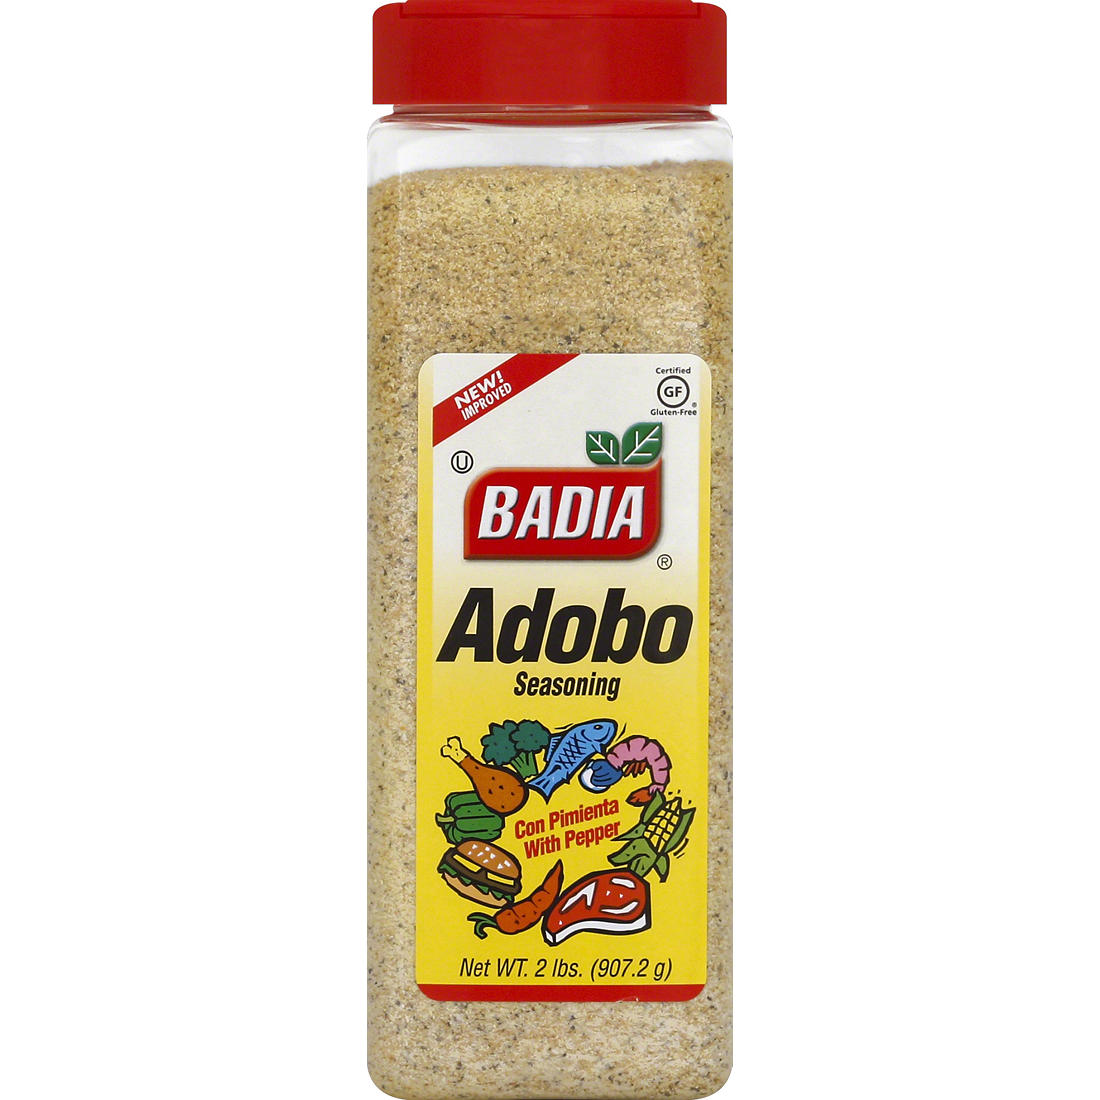 Badia Adobo Seasoning With Pepper 32 Oz Bjs Wholesale Club